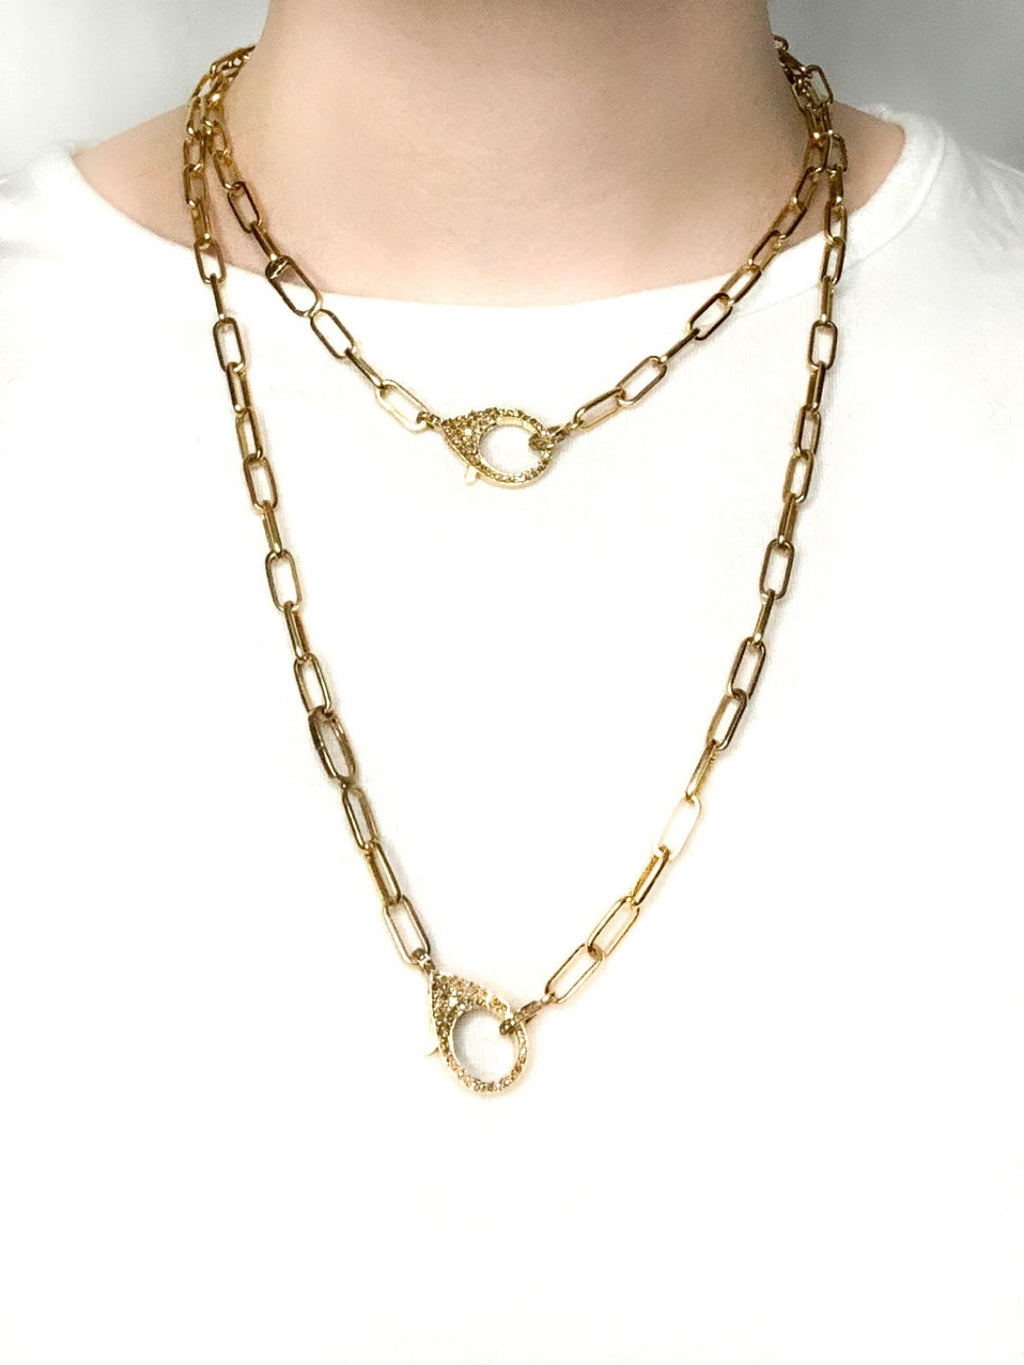 Brass Hidden Double Clip Chain with Pave Diamond Clip and Bale